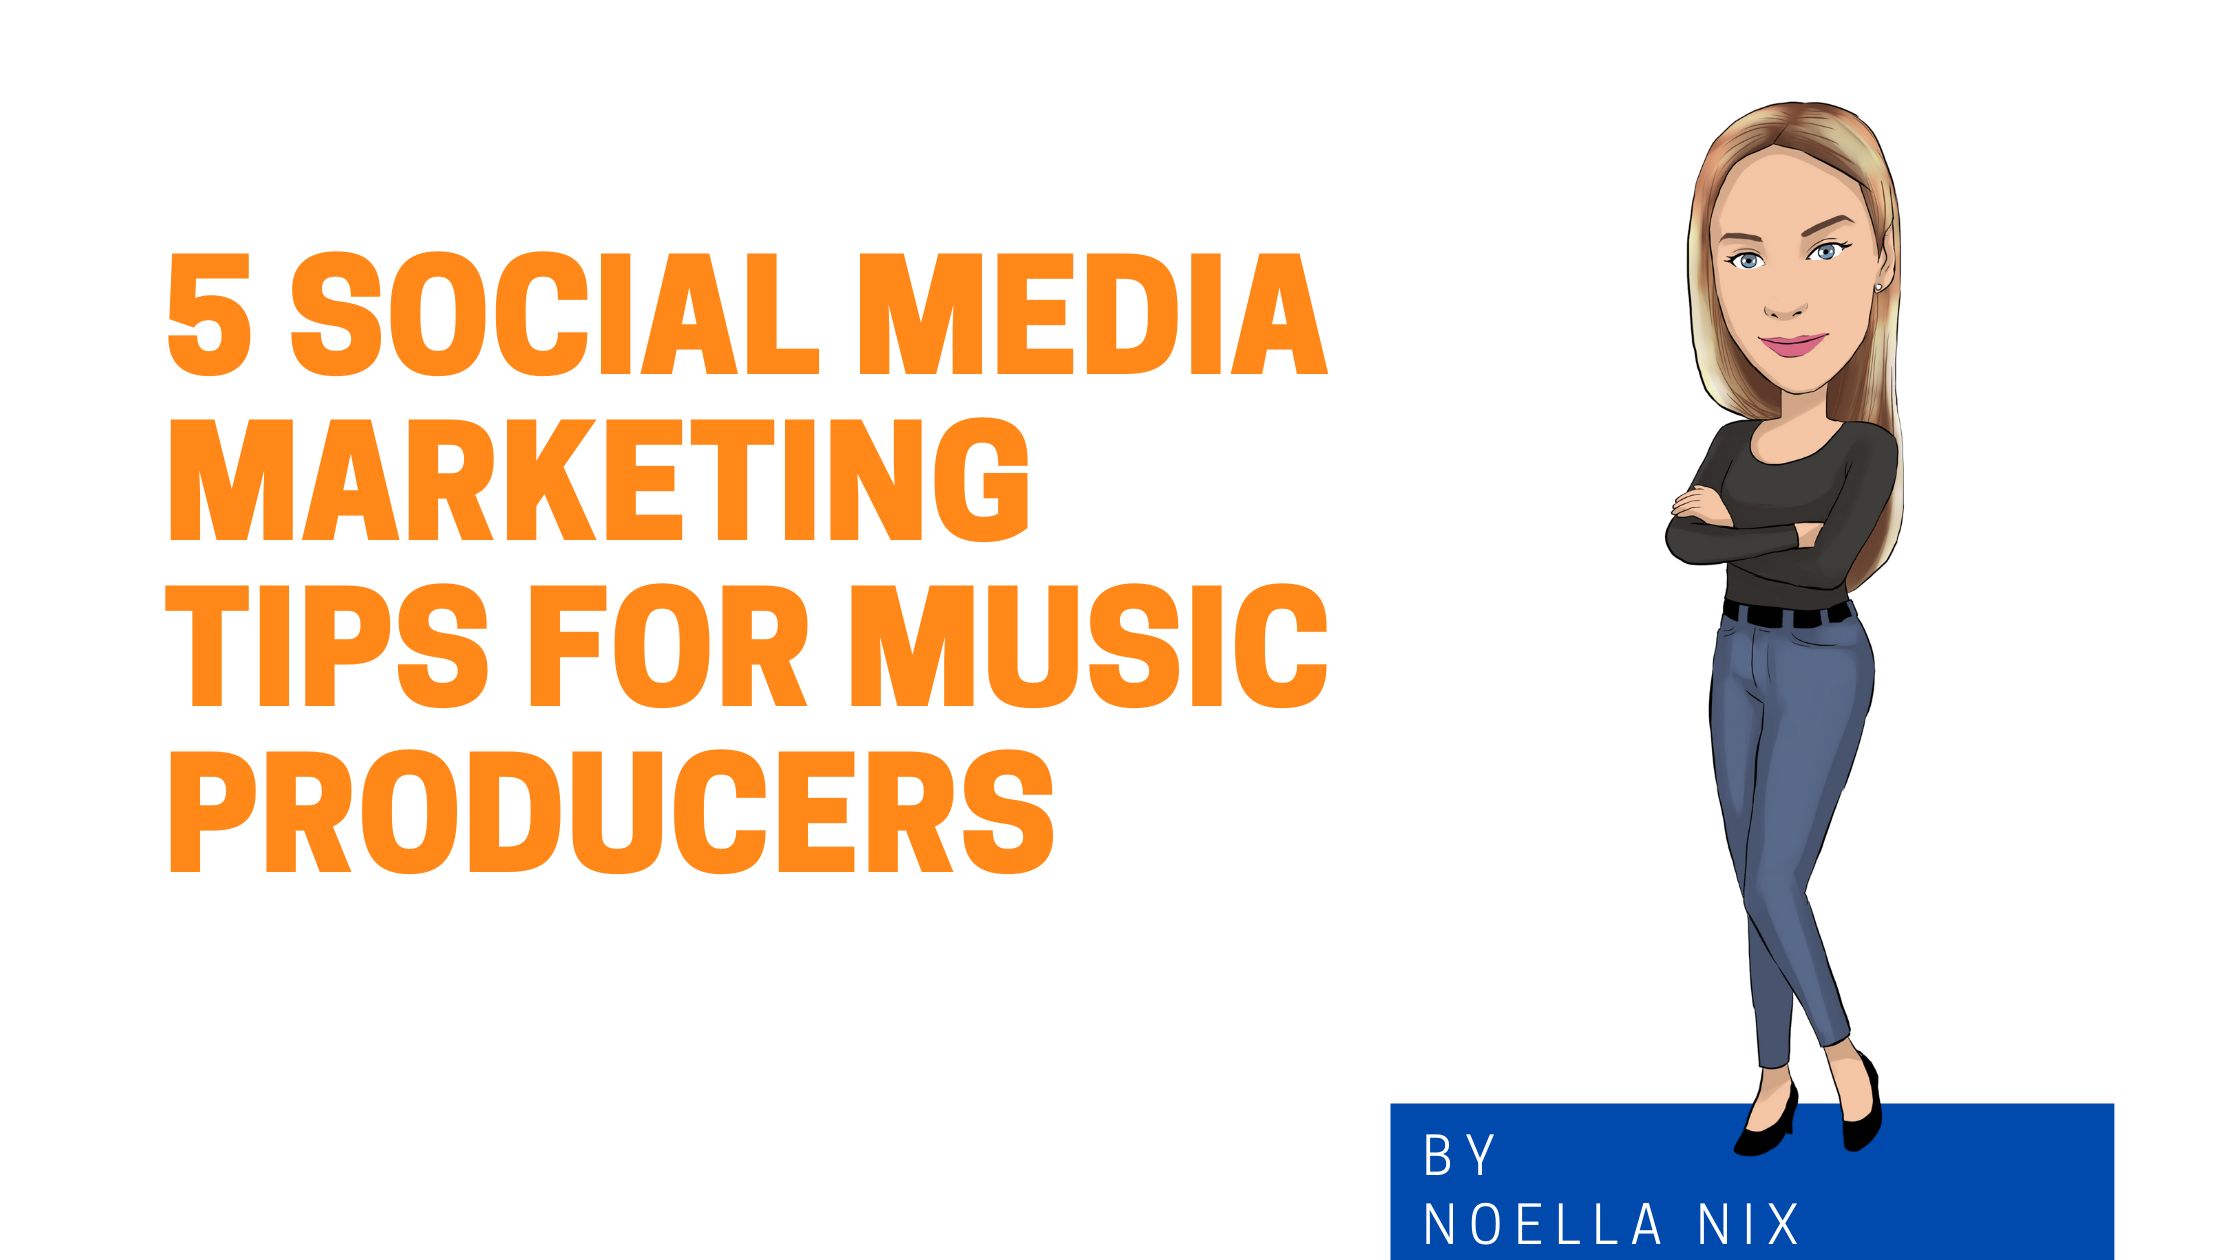 5 Social Media Marketing Tips For Music Producers image graphic